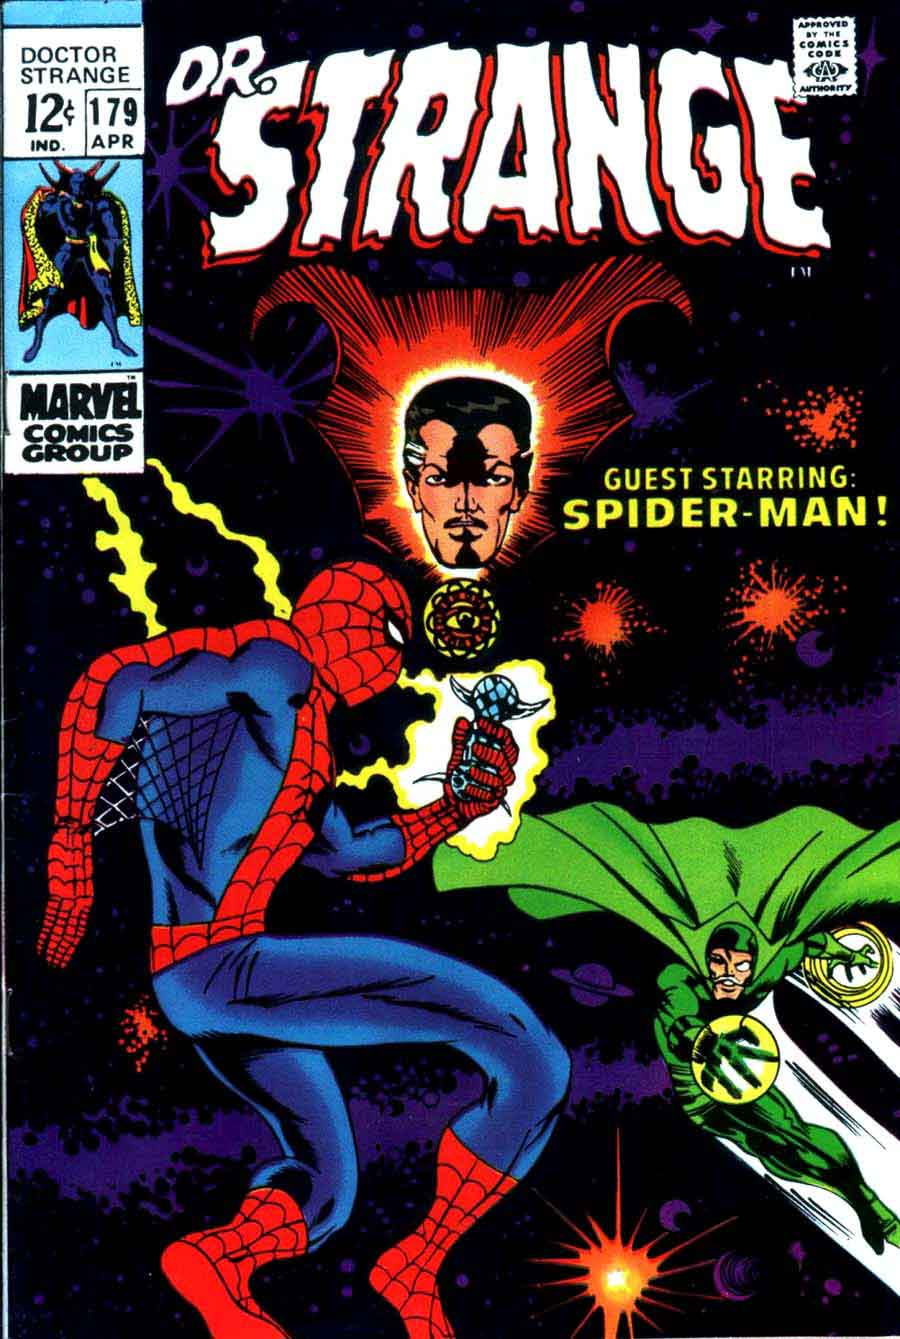 Image result for Spiderman and doctor strange cover